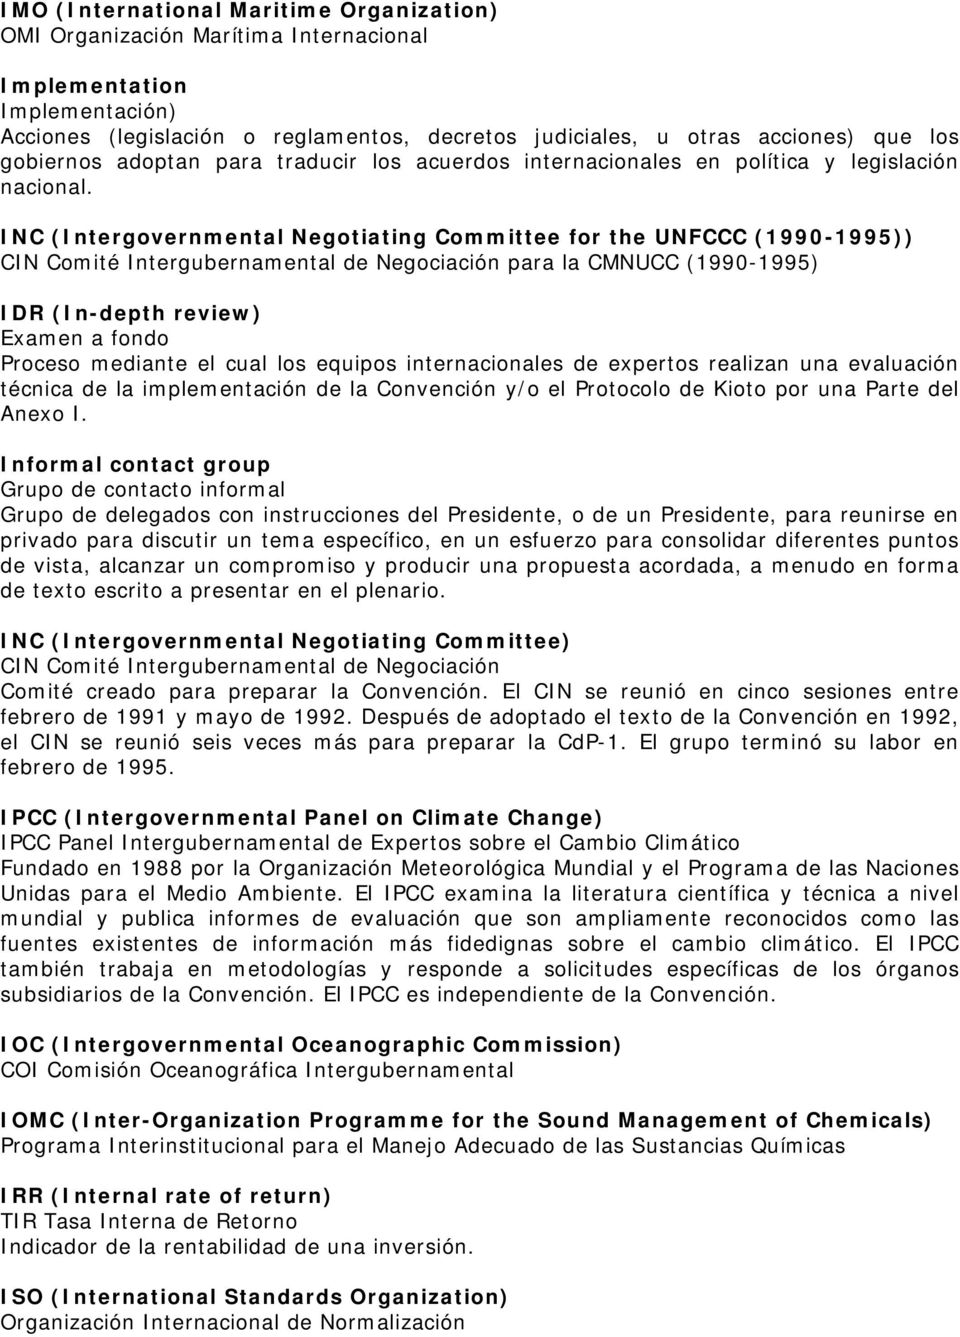 INC (Intergovernmental Negotiating Committee for the UNFCCC (1990-1995)) CIN Comité Intergubernamental de Negociación para la CMNUCC (1990-1995) IDR (In-depth review) Examen a fondo Proceso mediante